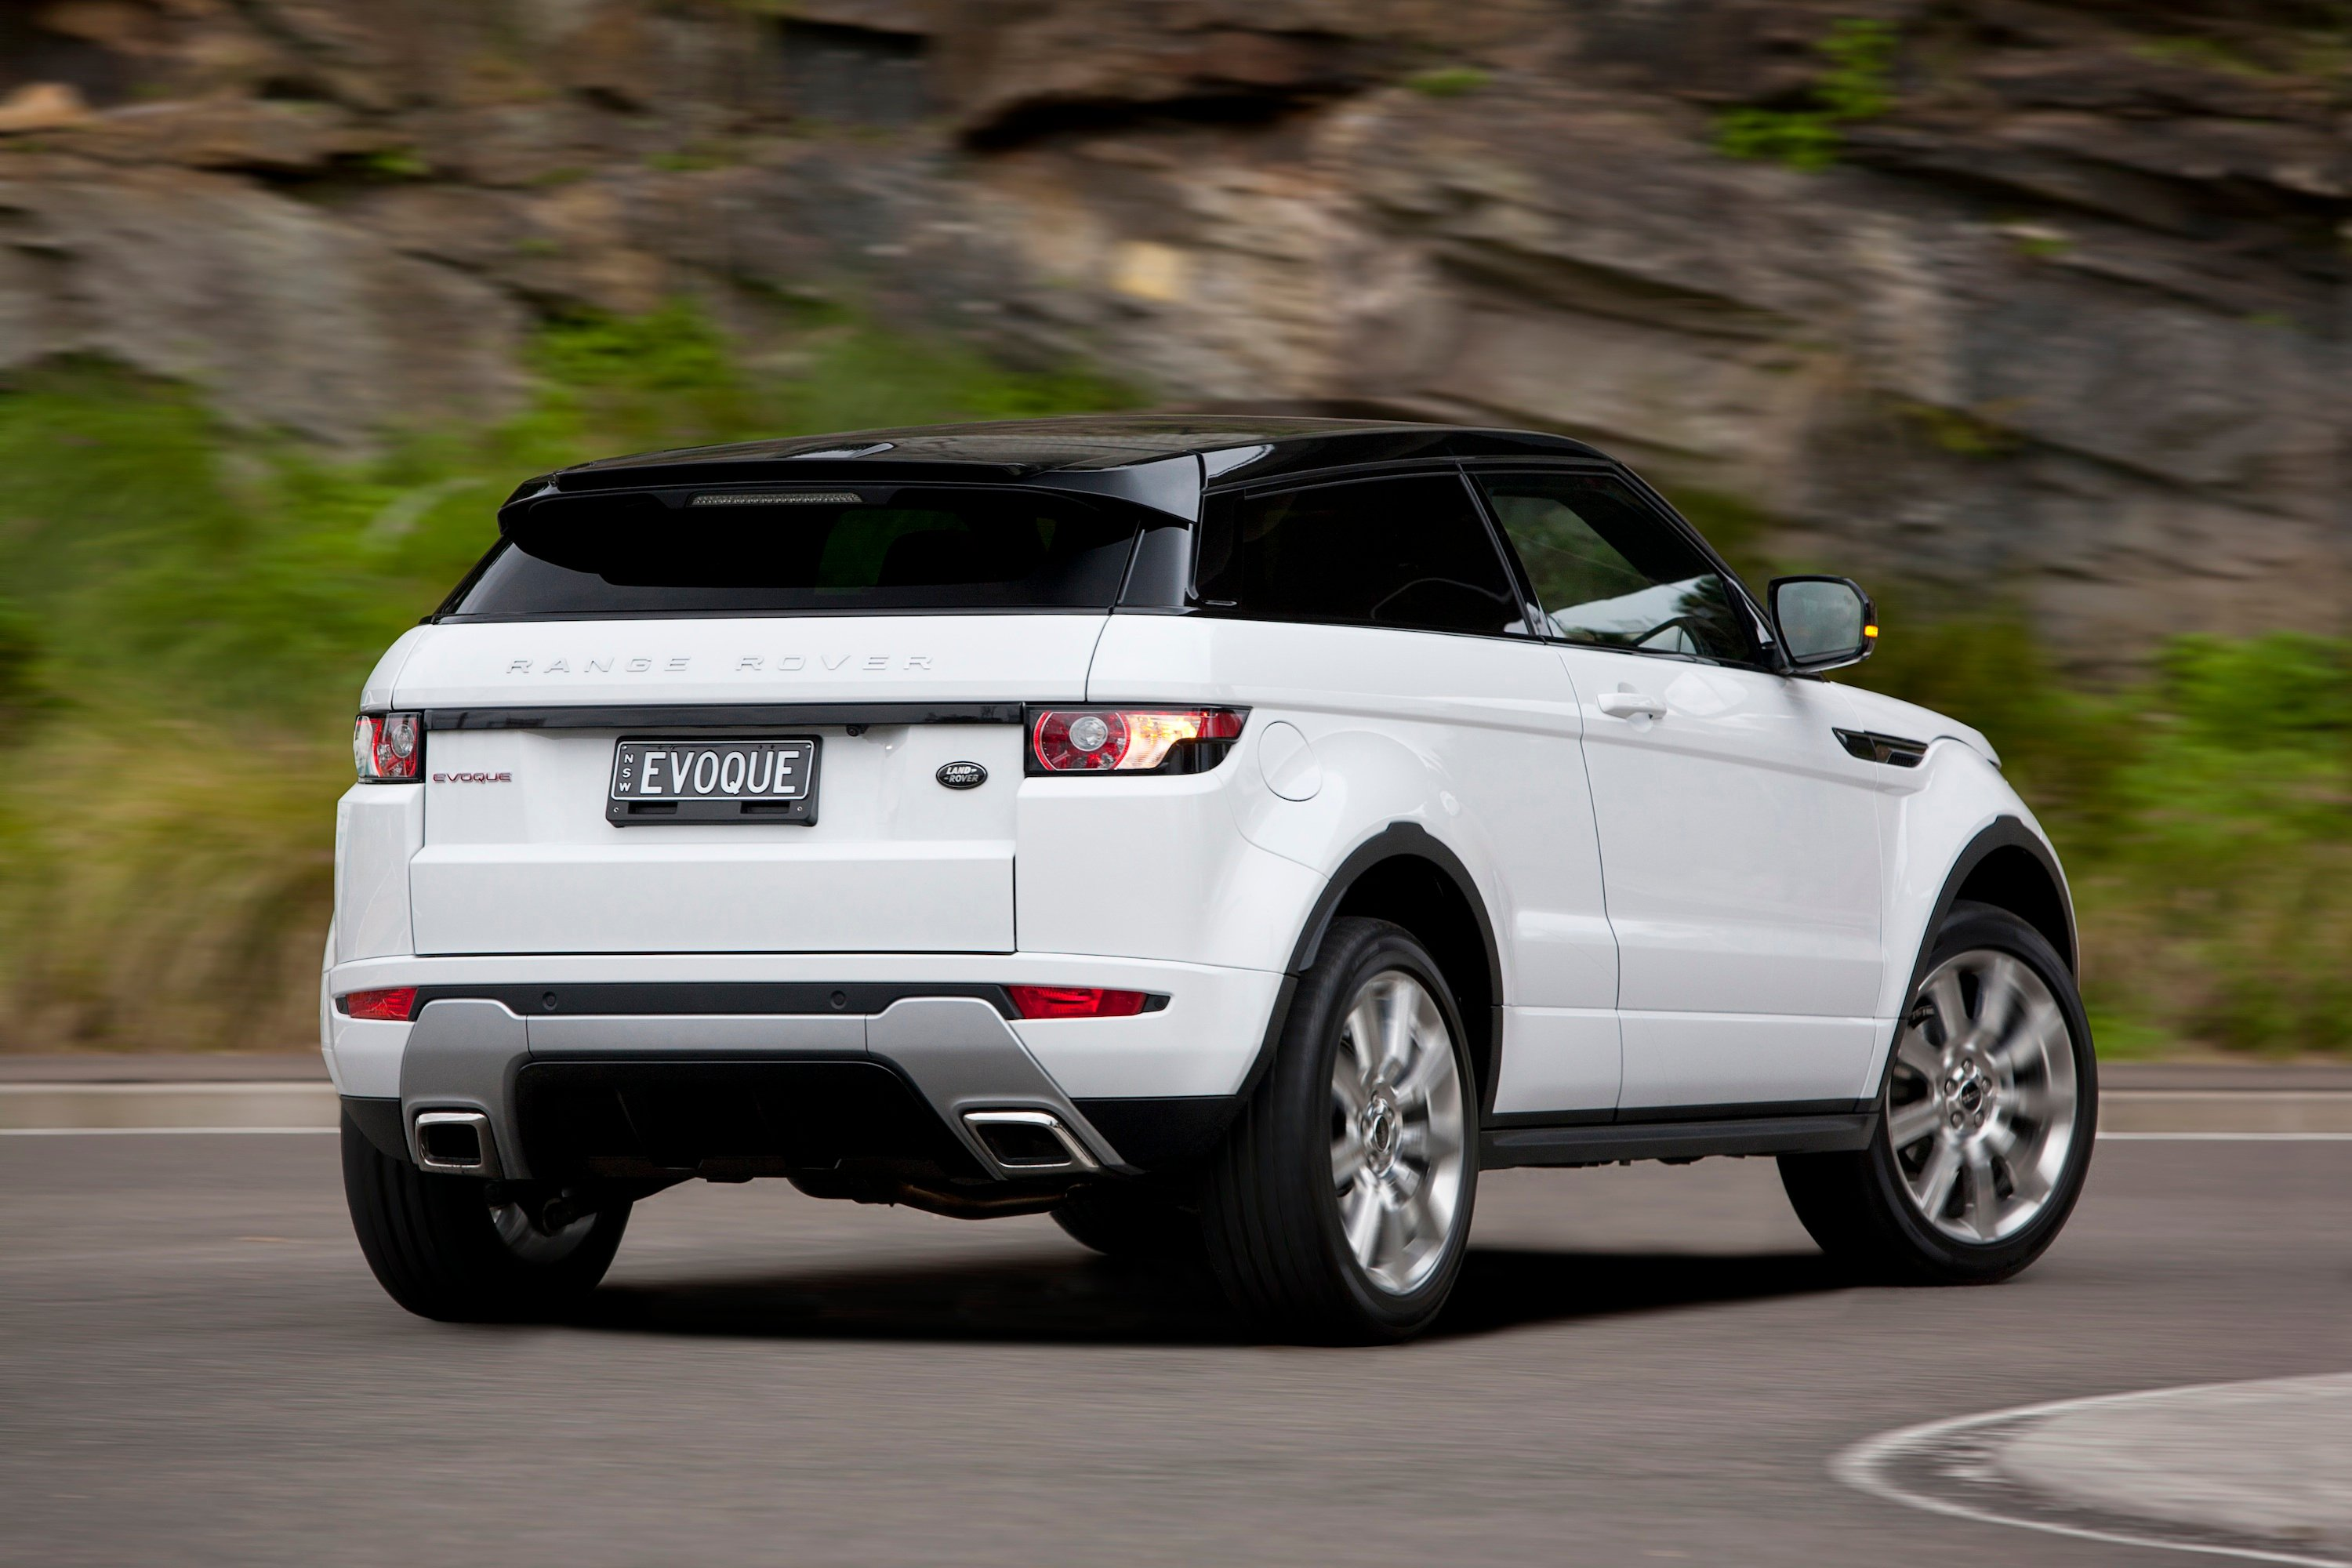 range rover evoque review photos caradvice. Black Bedroom Furniture Sets. Home Design Ideas